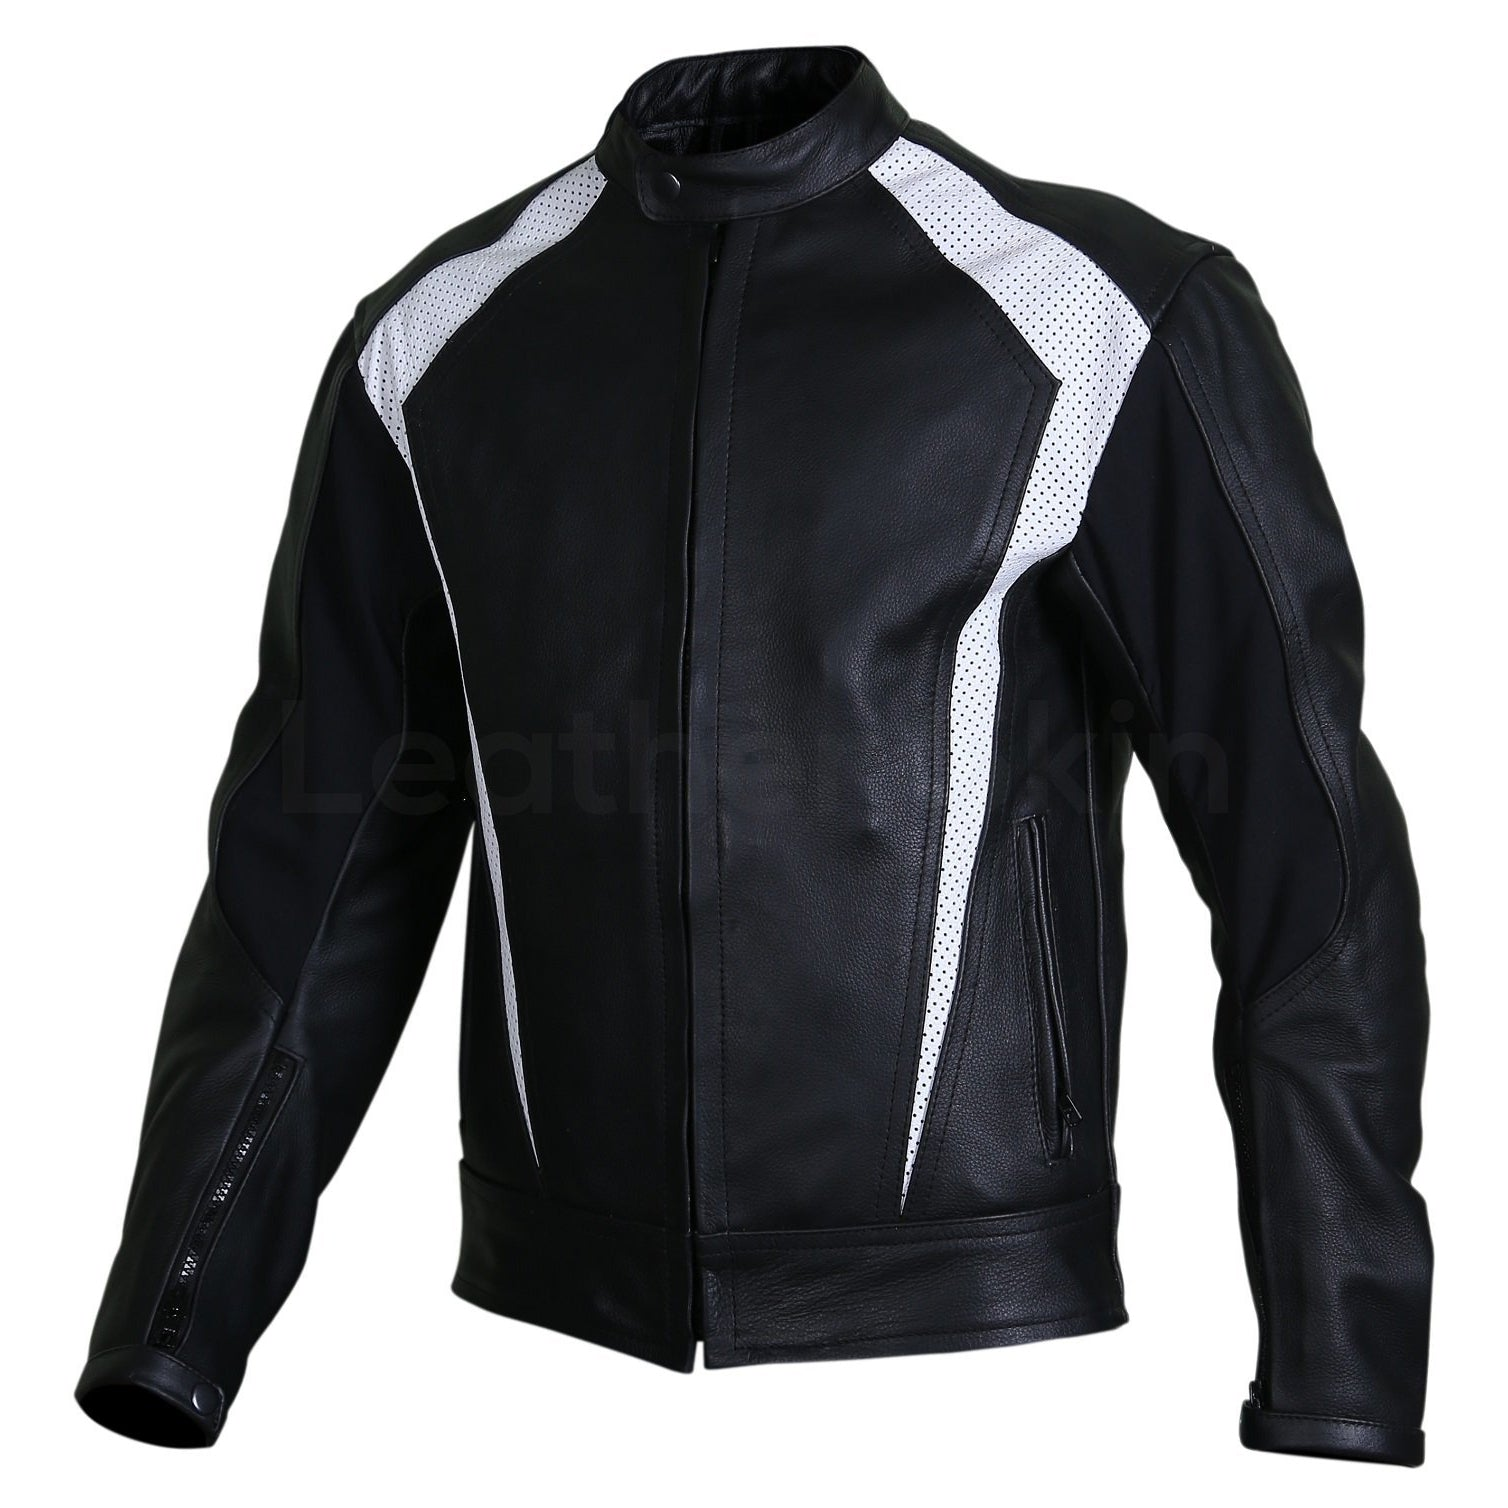 black biker jacket with perforation